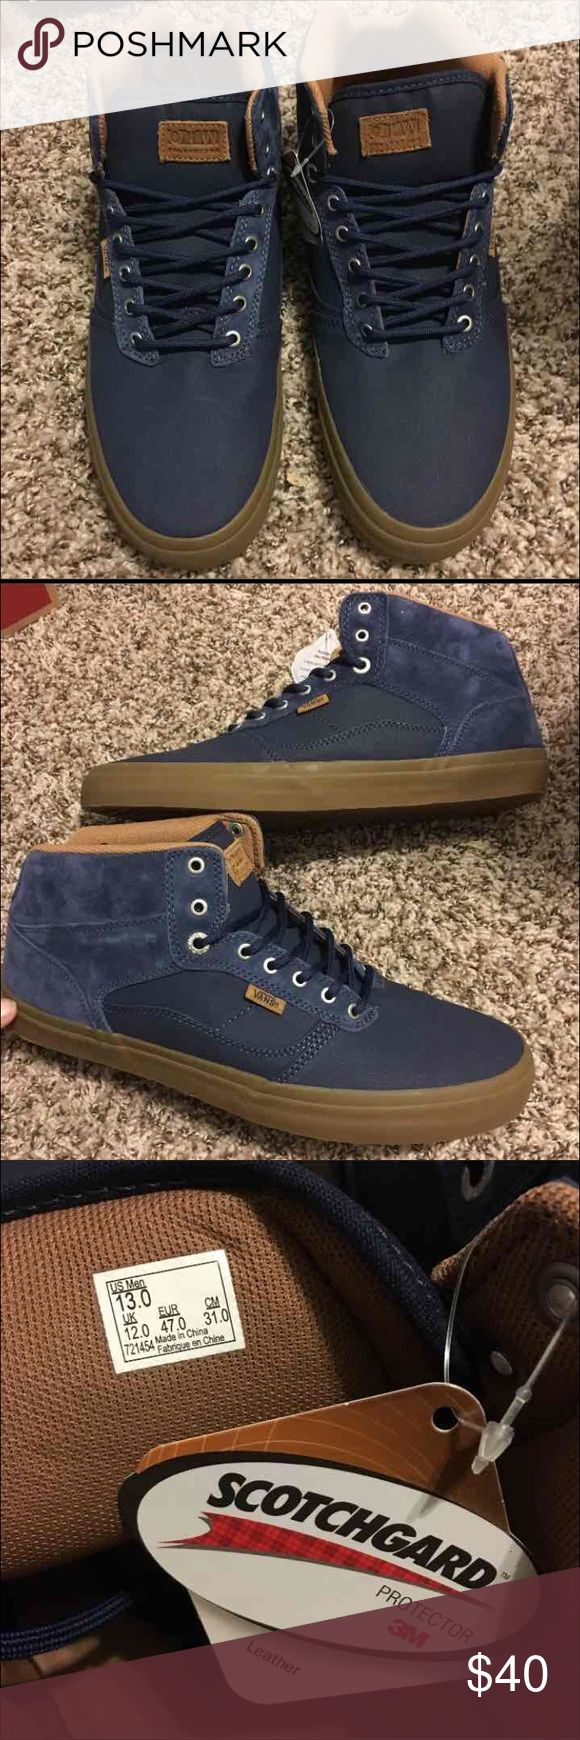 NEW 👀 Vans Bedford Gum sole Mid Top Suede Navy Never worn! Comes with original box! Great condition! Real Suede!   This is a dead stock! No longer in production!   RARE FIND IN UNWORN CONDITION!   Price is negotiable to an extent! :)  Best offers only please!   Check out the rest of my page for MORE Vans shoe Styles for sale! I love to bundle and save on shipping, comment to find out more! Vans Shoes